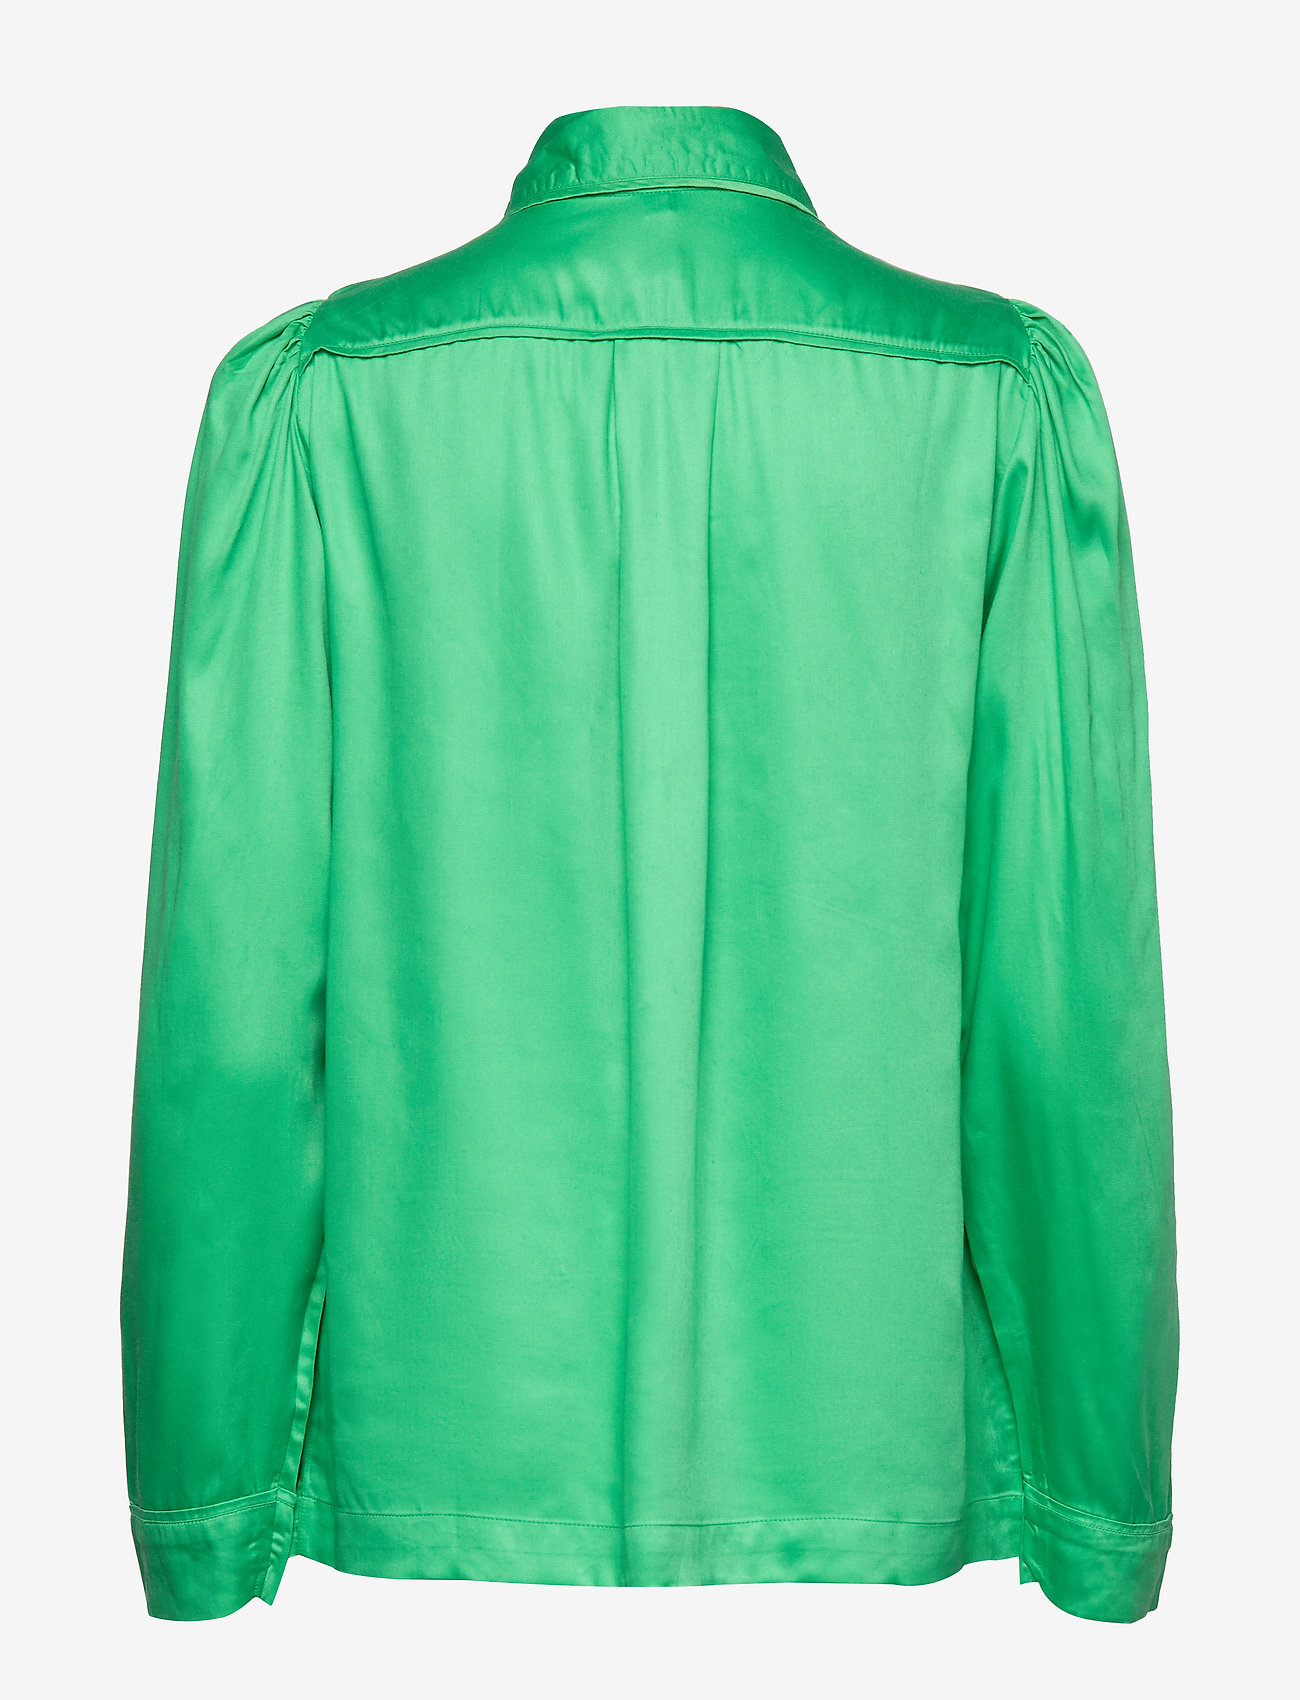 Underprotection - Rana shirt - Överdelar - green - 1